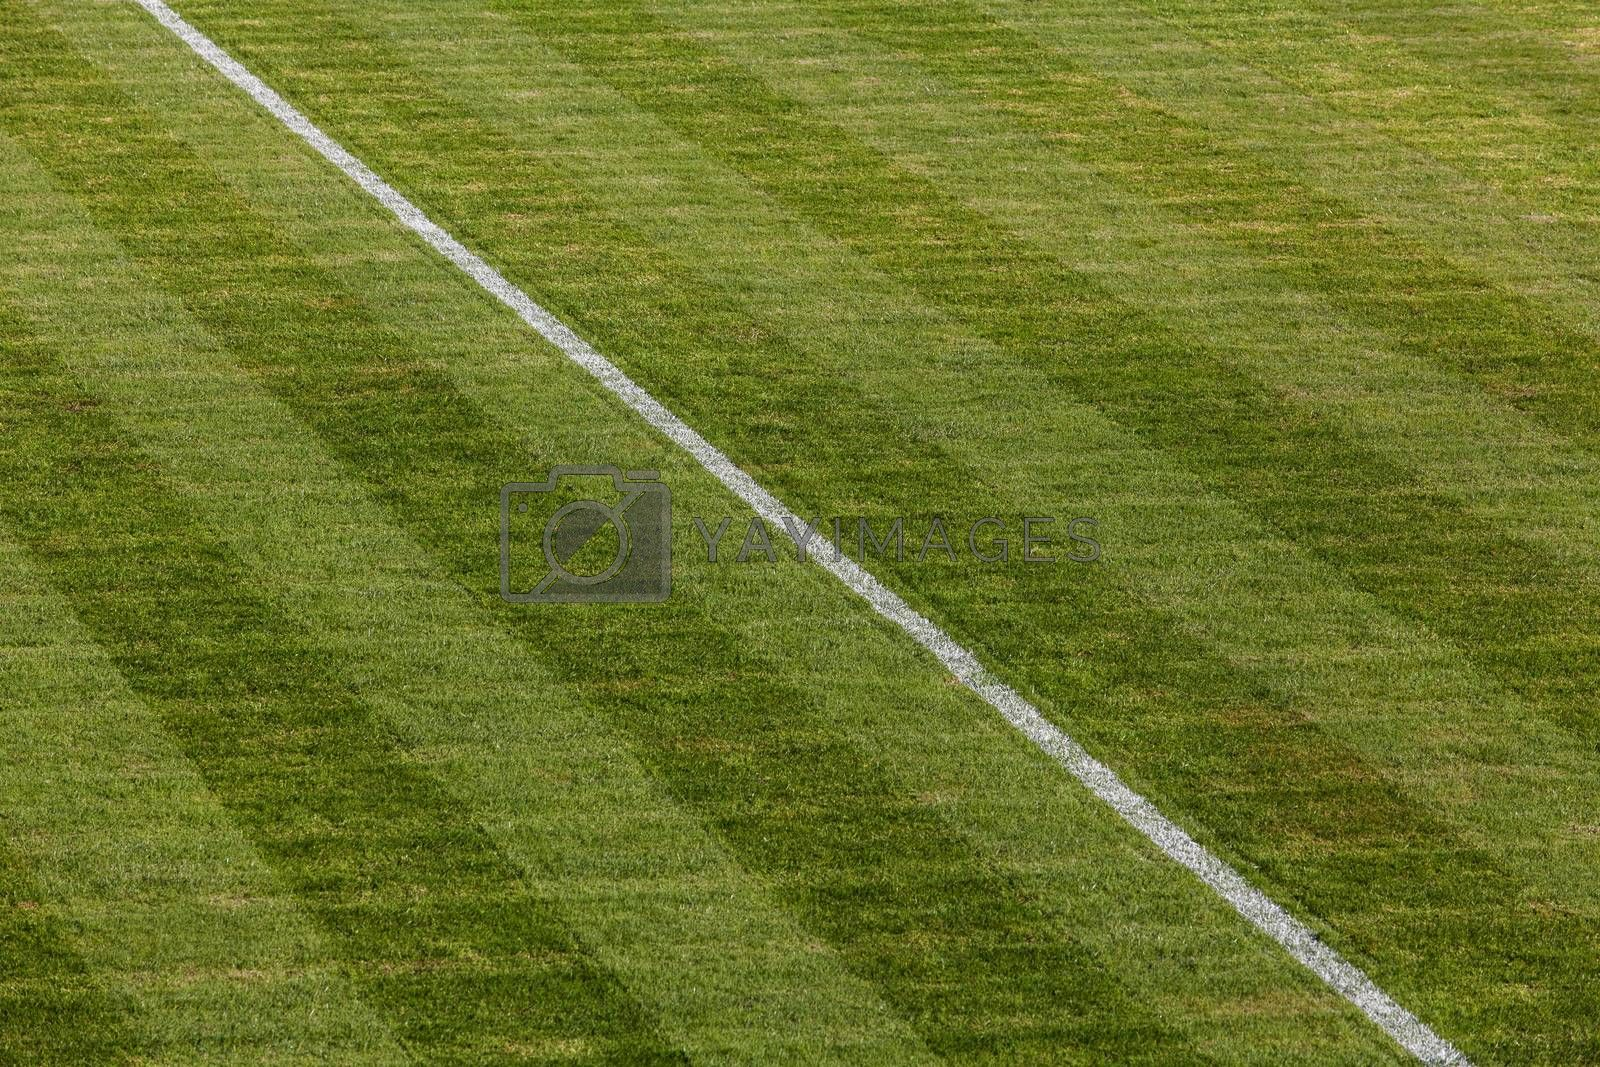 Royalty free image of Natural green grass soccer field by IxMaster